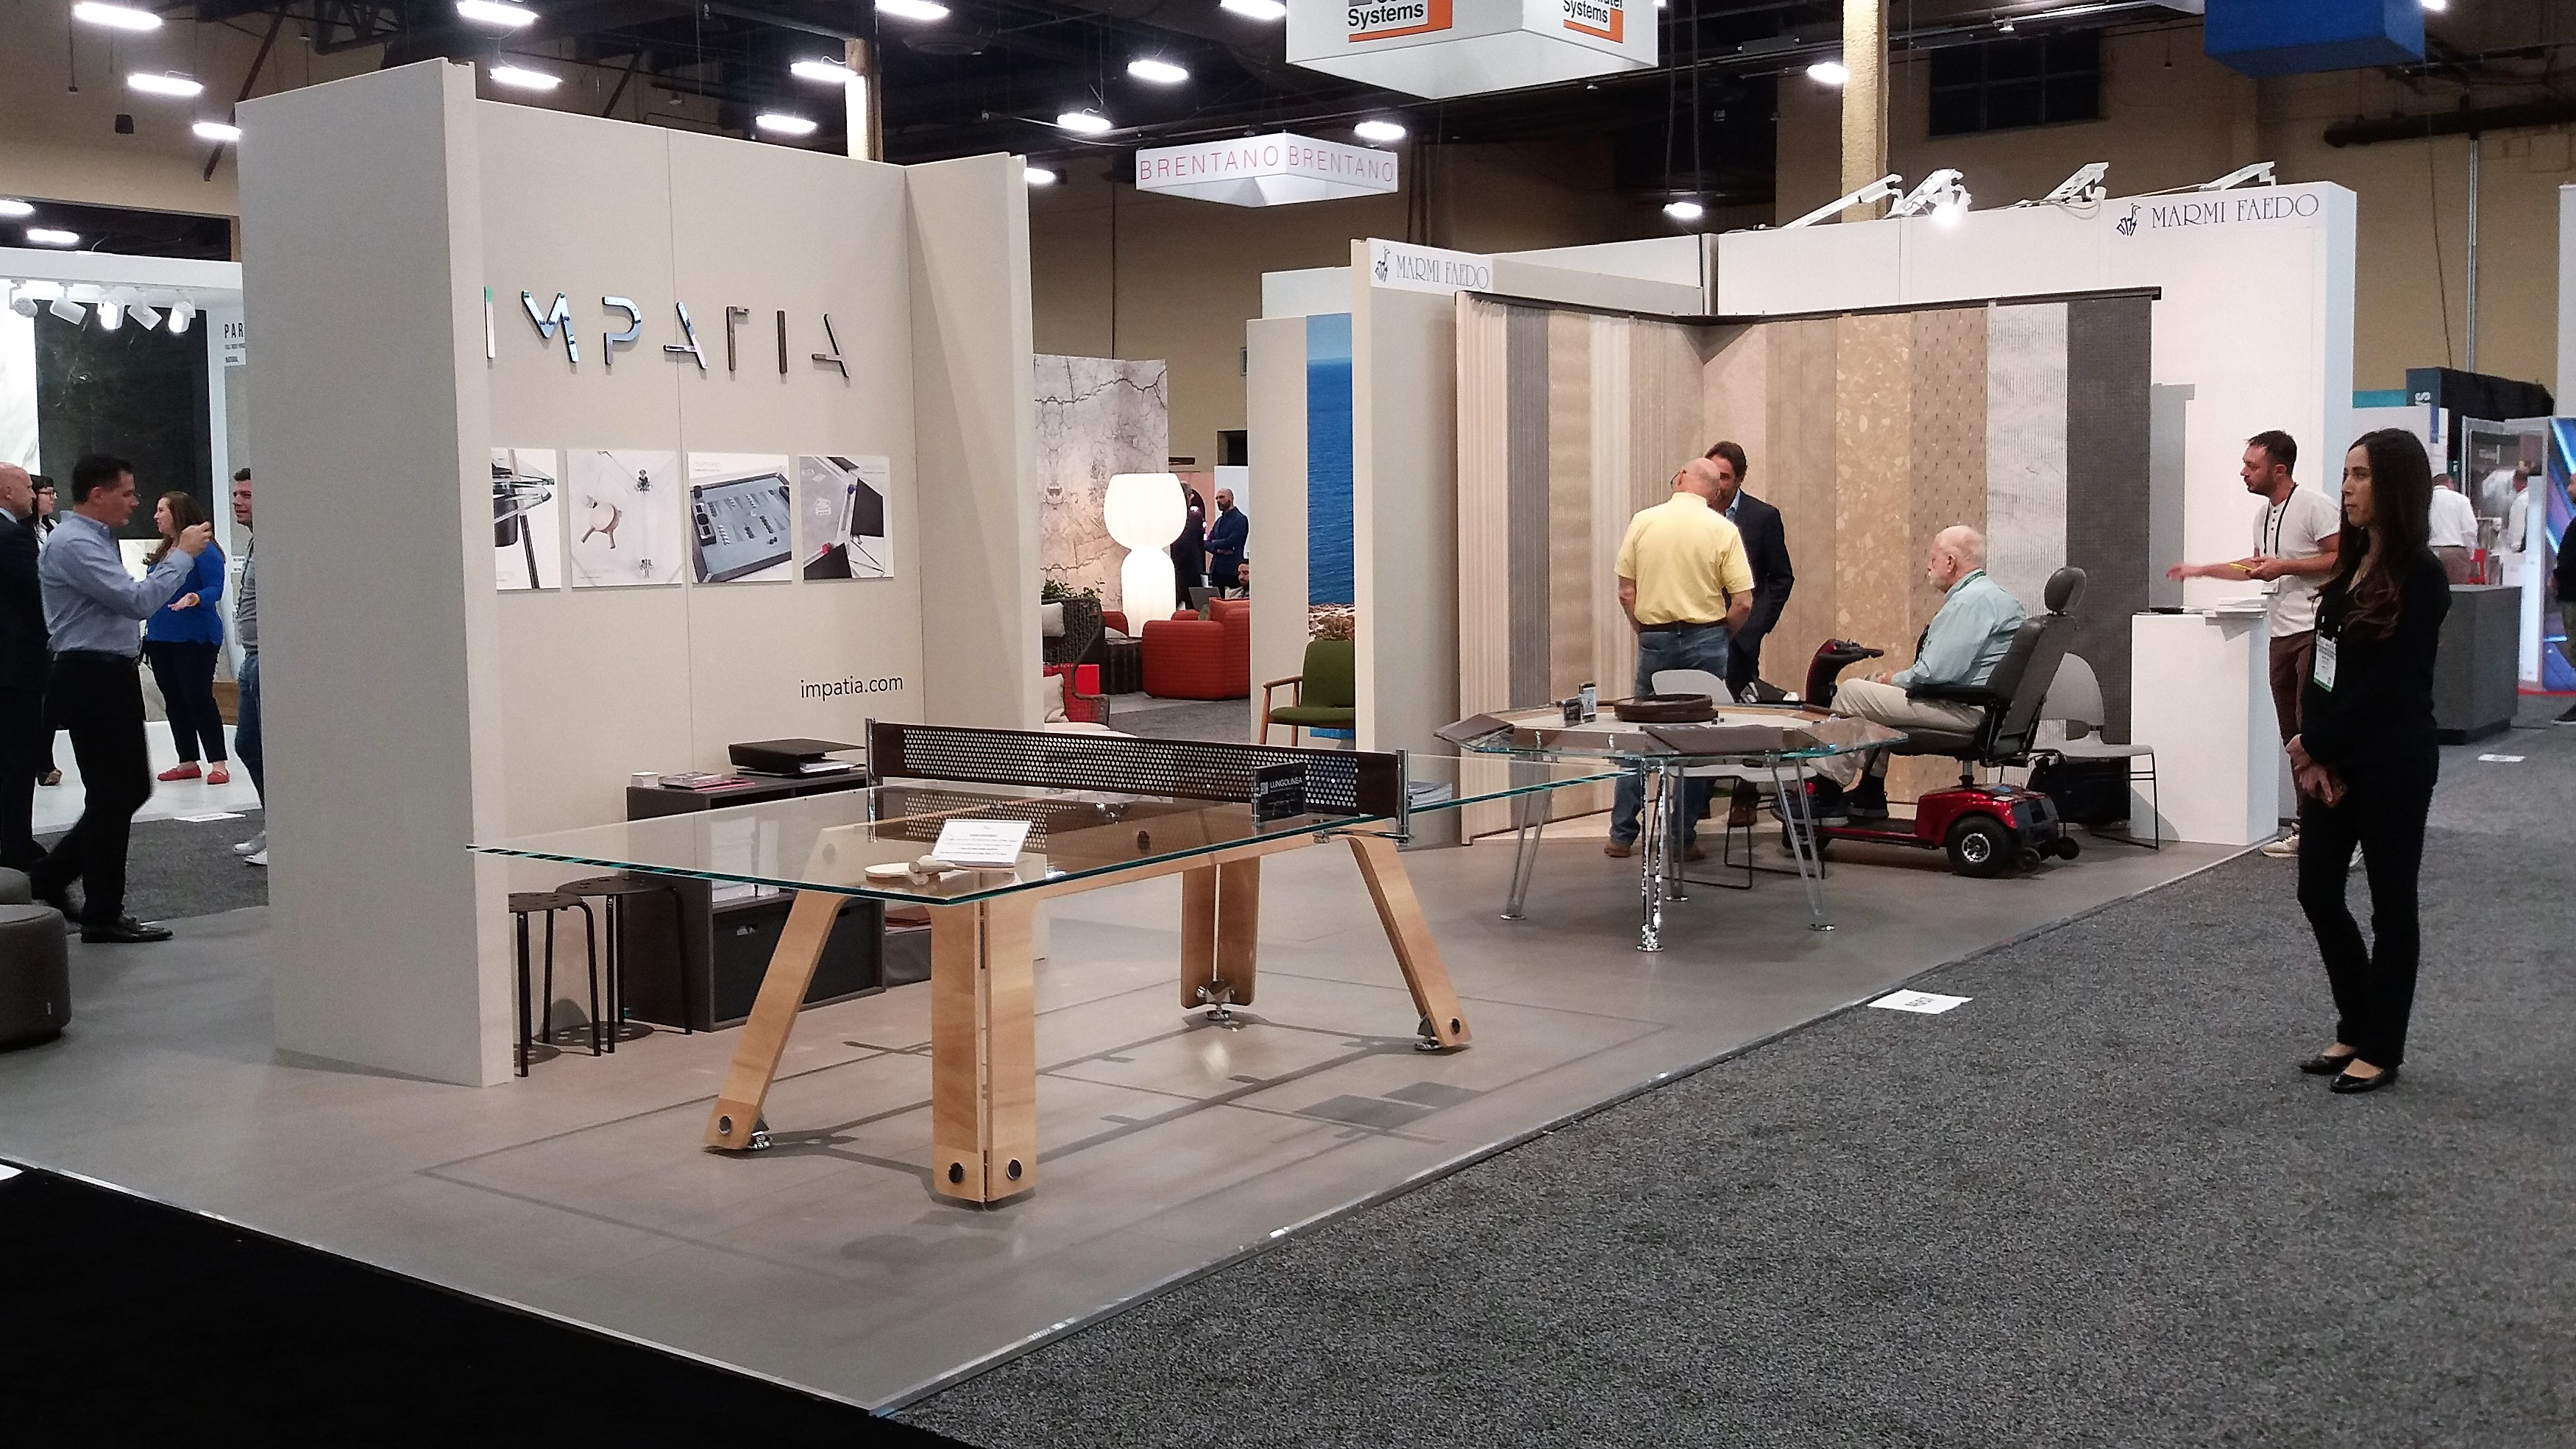 IMPATIA - Hospitality Design Expo